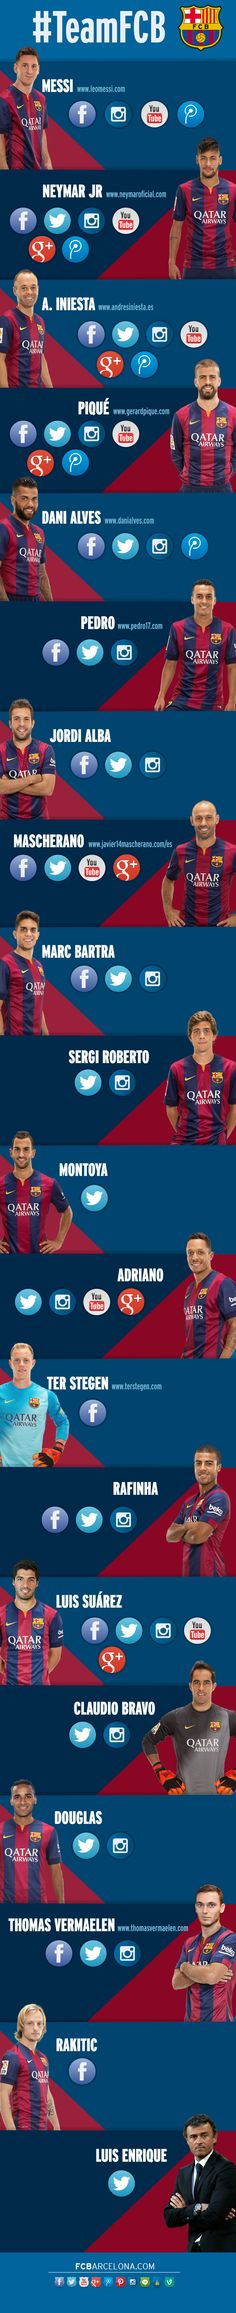 TOUCH den här bilden: #TeamFCB by fcbarcelona